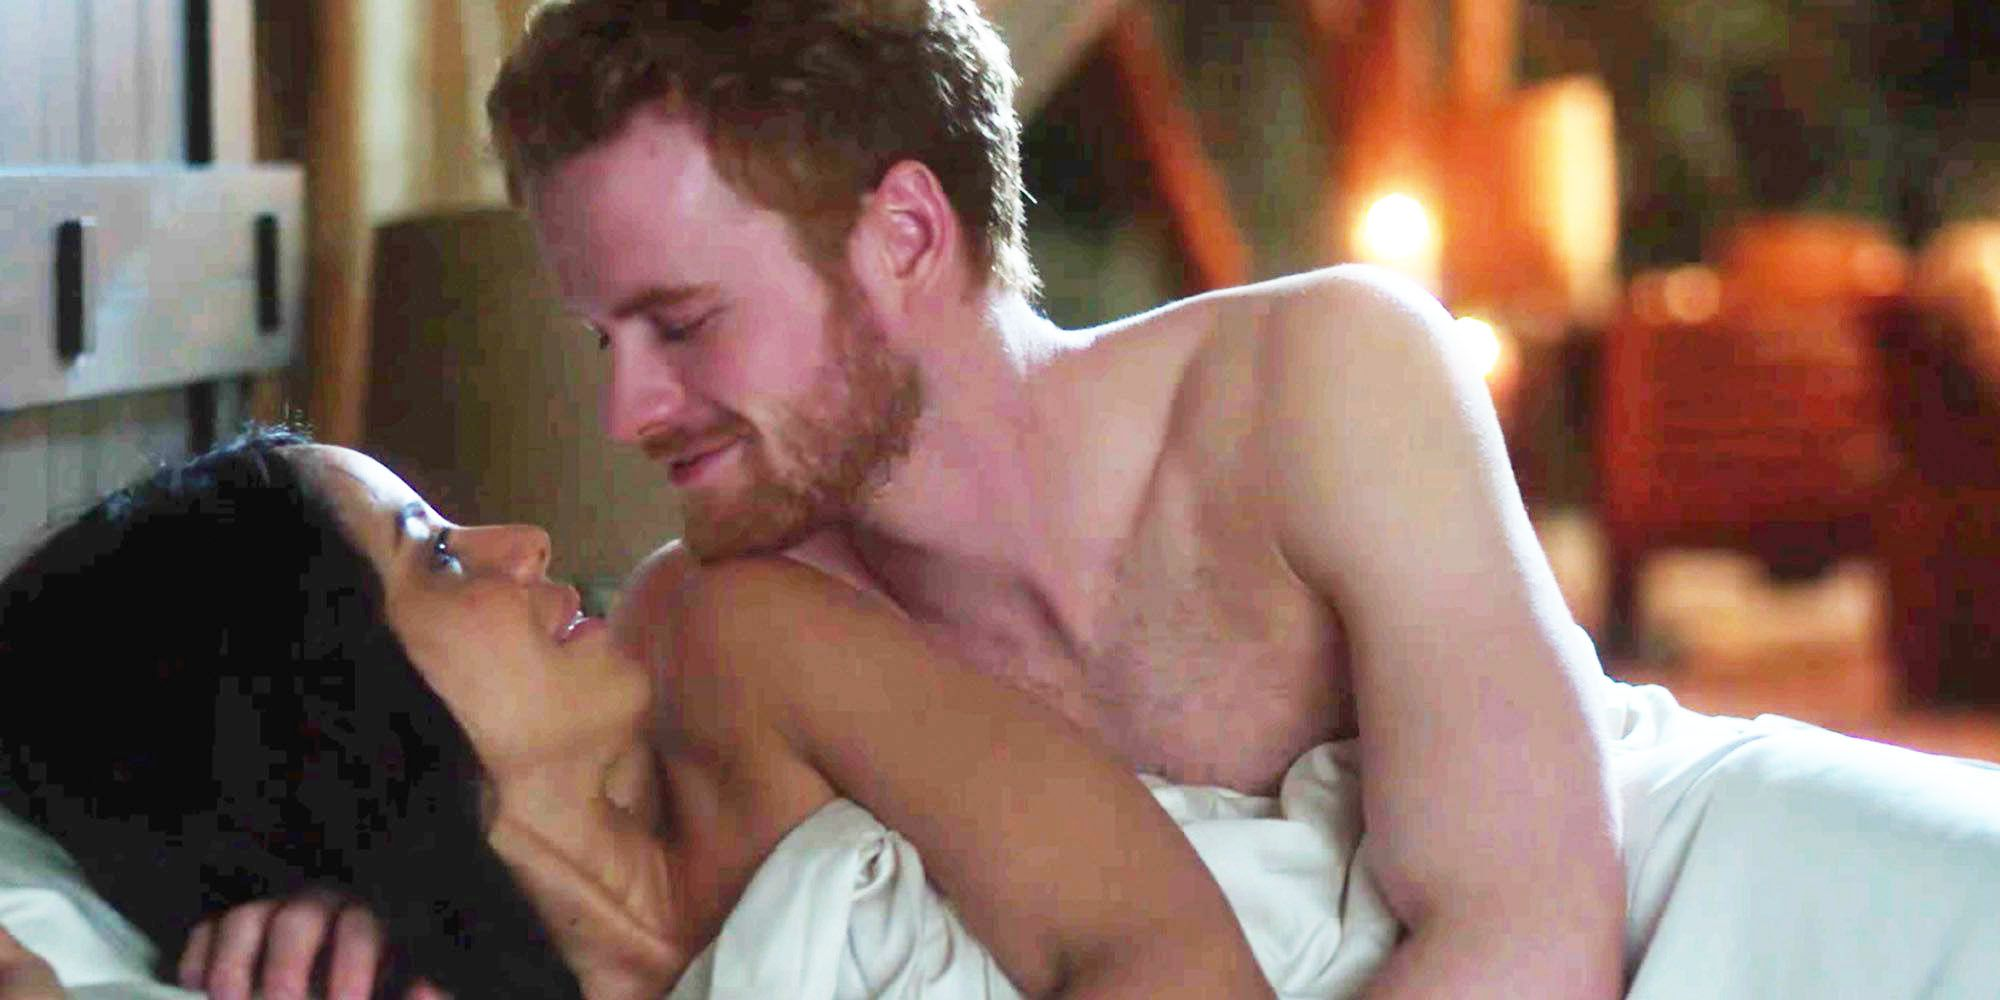 Prince Harry and Meghan Markle Fashiontime Original Sex Scene